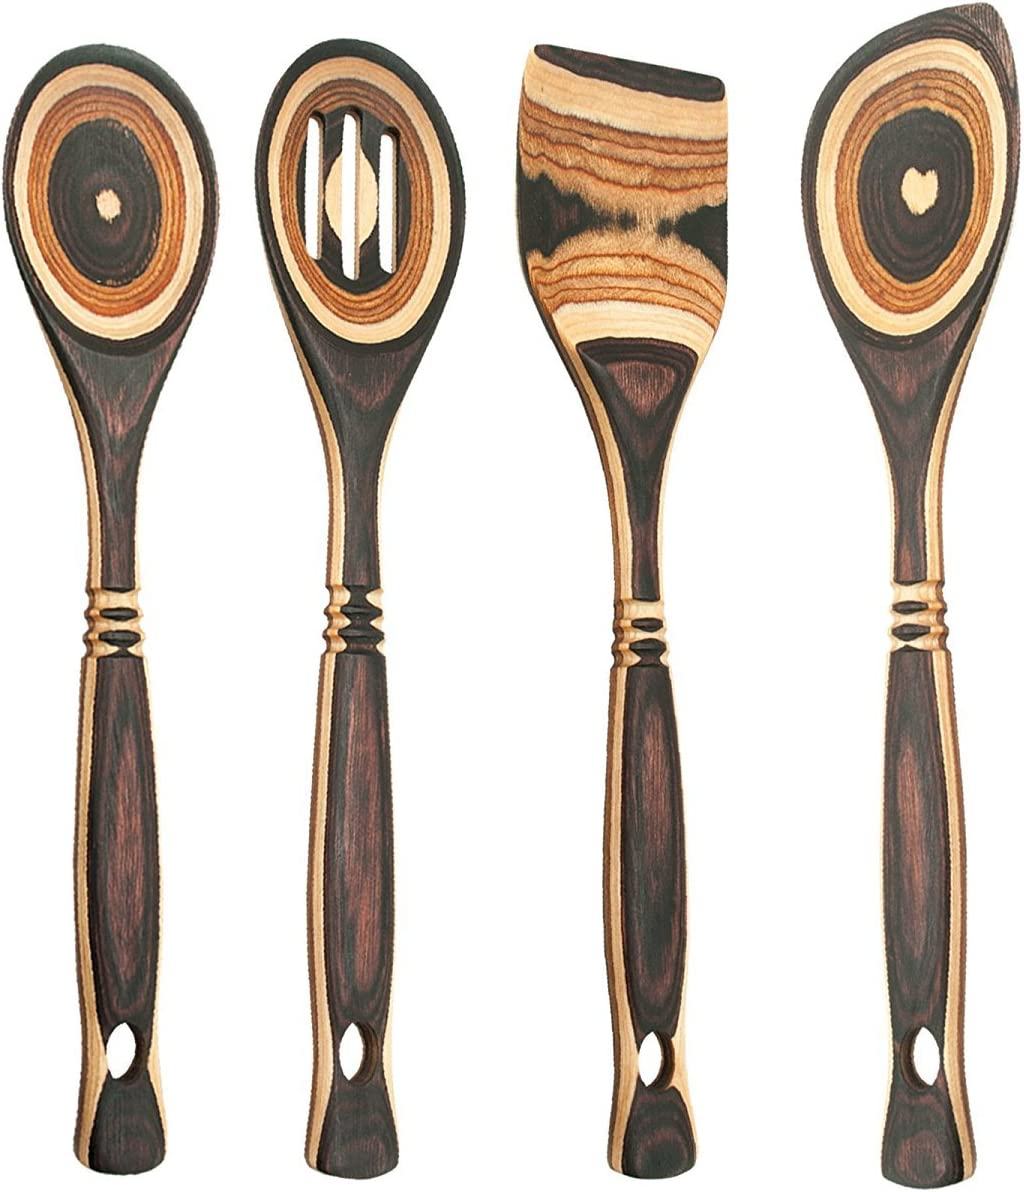 and Straight-Edge Spatula Corner Spoon Island Bamboo Natural Pakkawood 12 Wooden Spoon Set of 4 with Standard Spoon Slotted Spoon